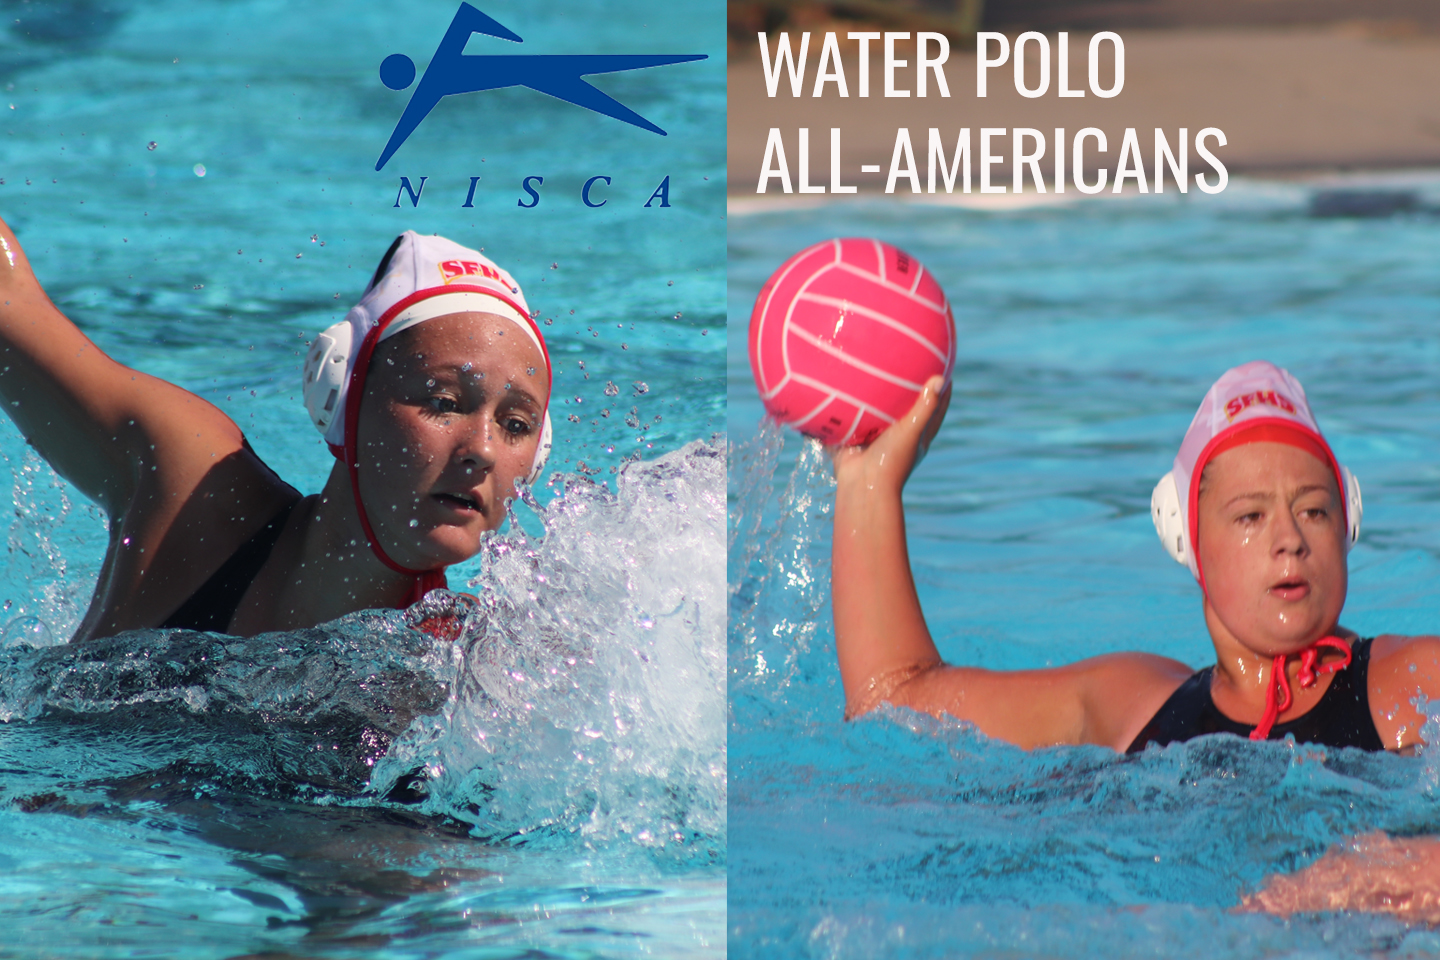 Houck and Slater Earn NISCA Water Polo All-America Honors